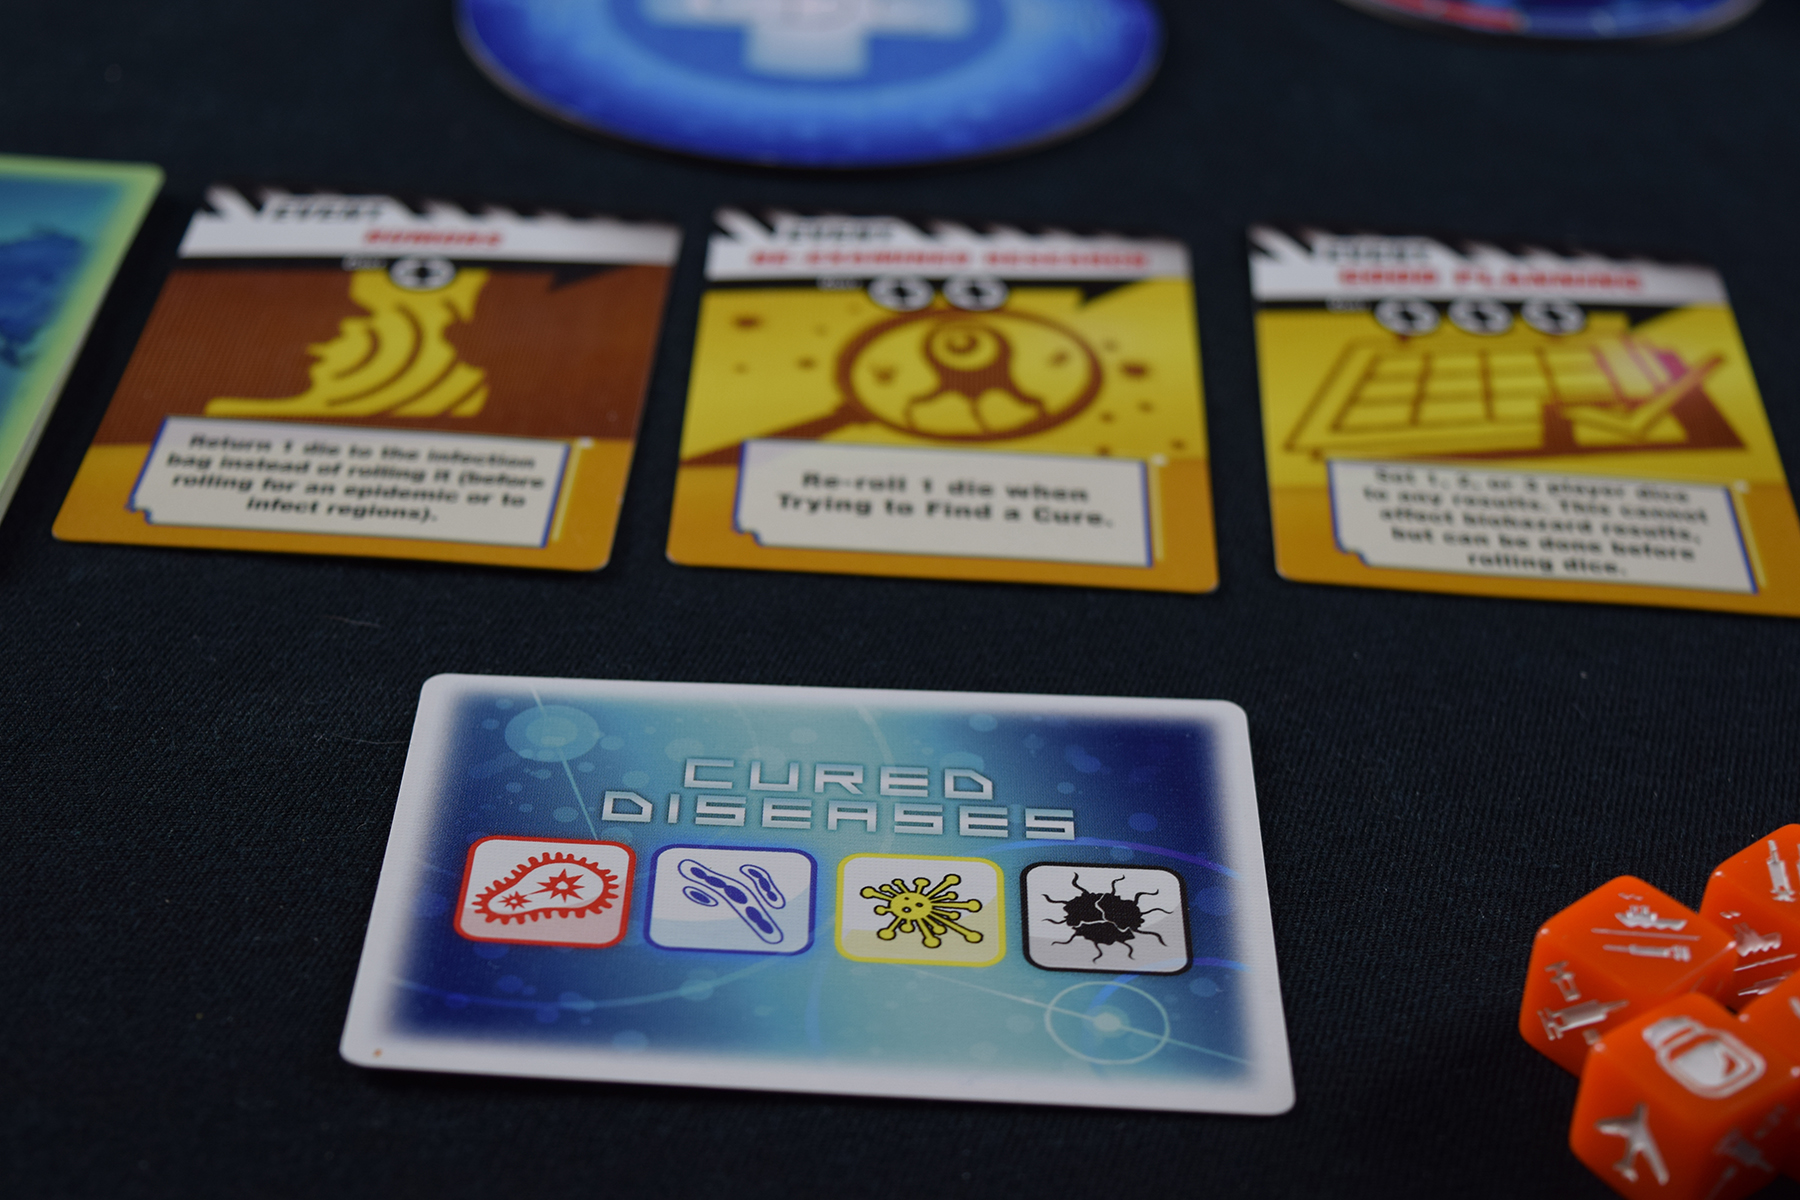 Pandemic Cured Viruses Card